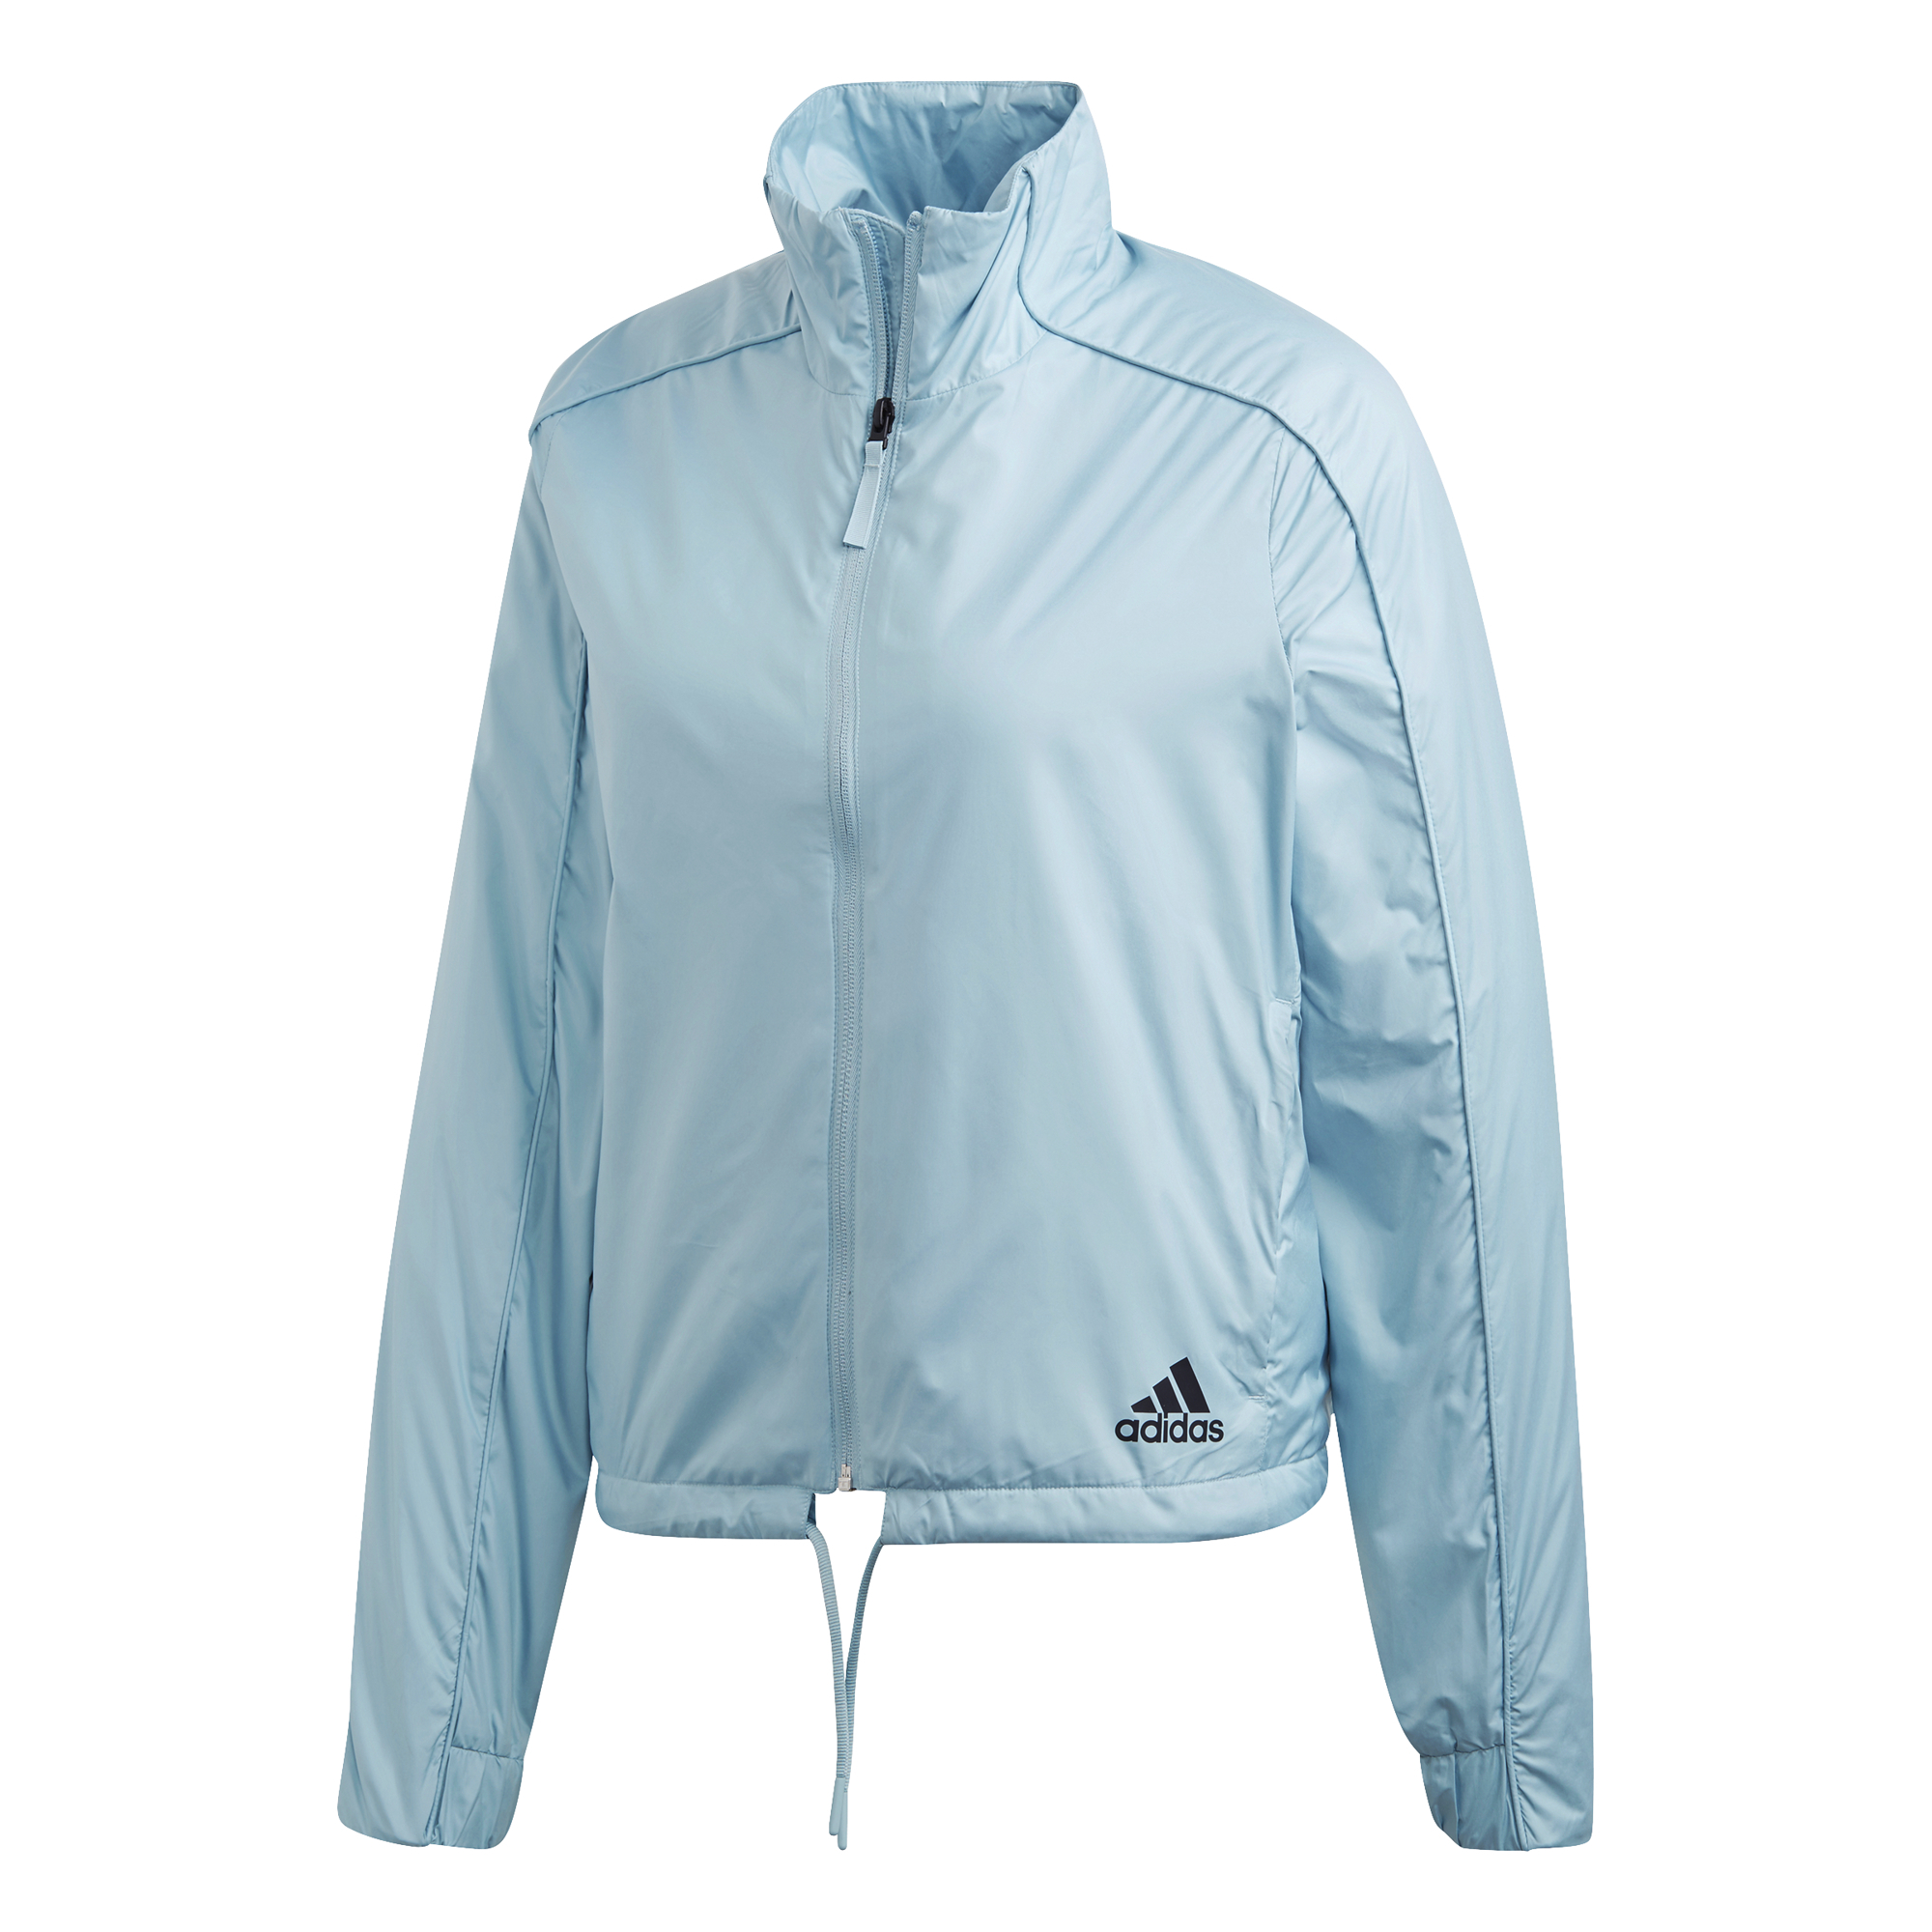 Chaqueta Adidas Light Insulated para mujer